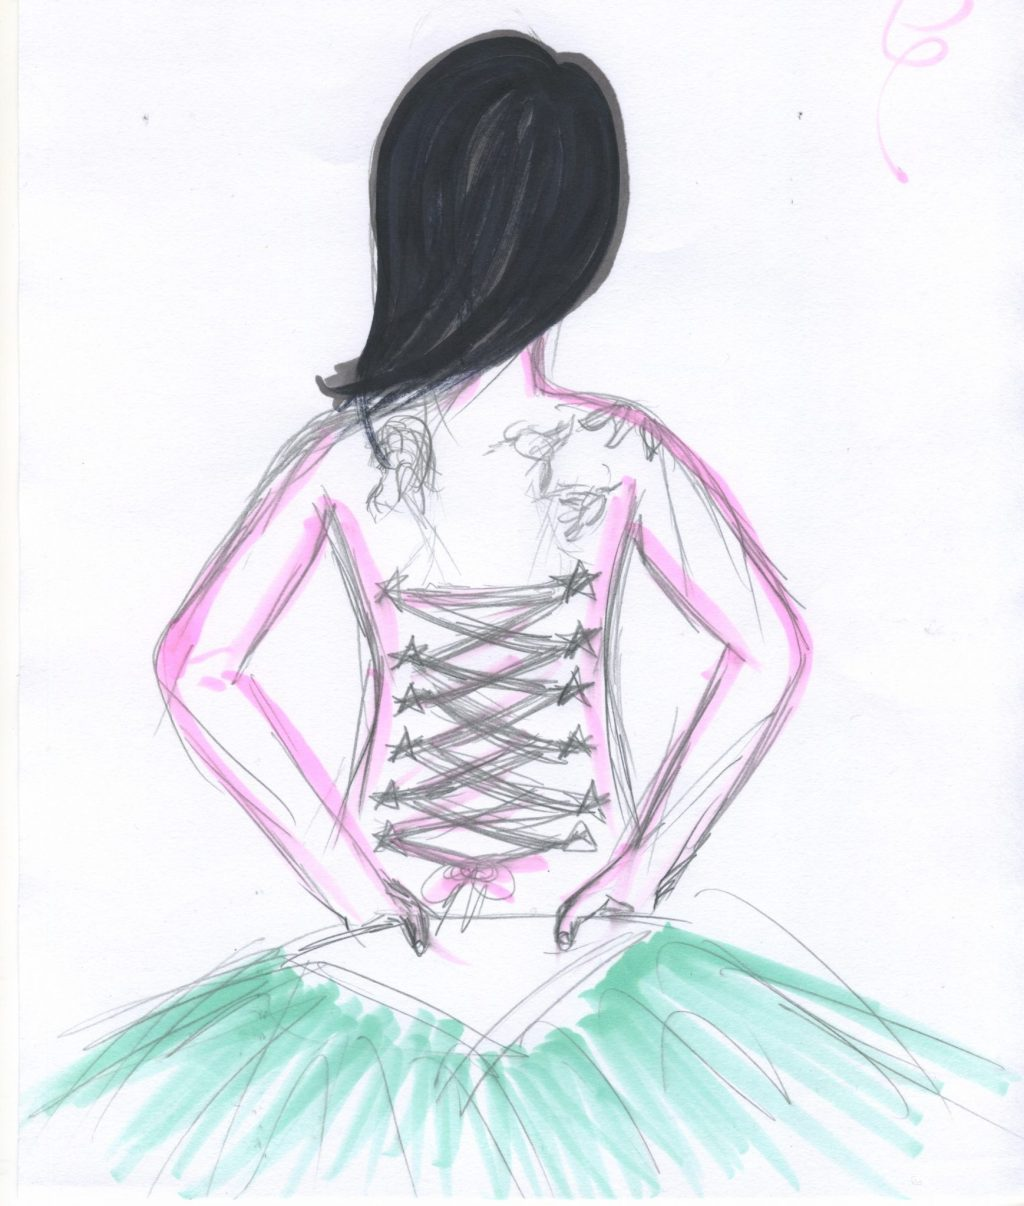 A sketch of a woman performing a fan dance, the fan is held low on her back revealing her tattoos. The sketch has been lightly coloured.